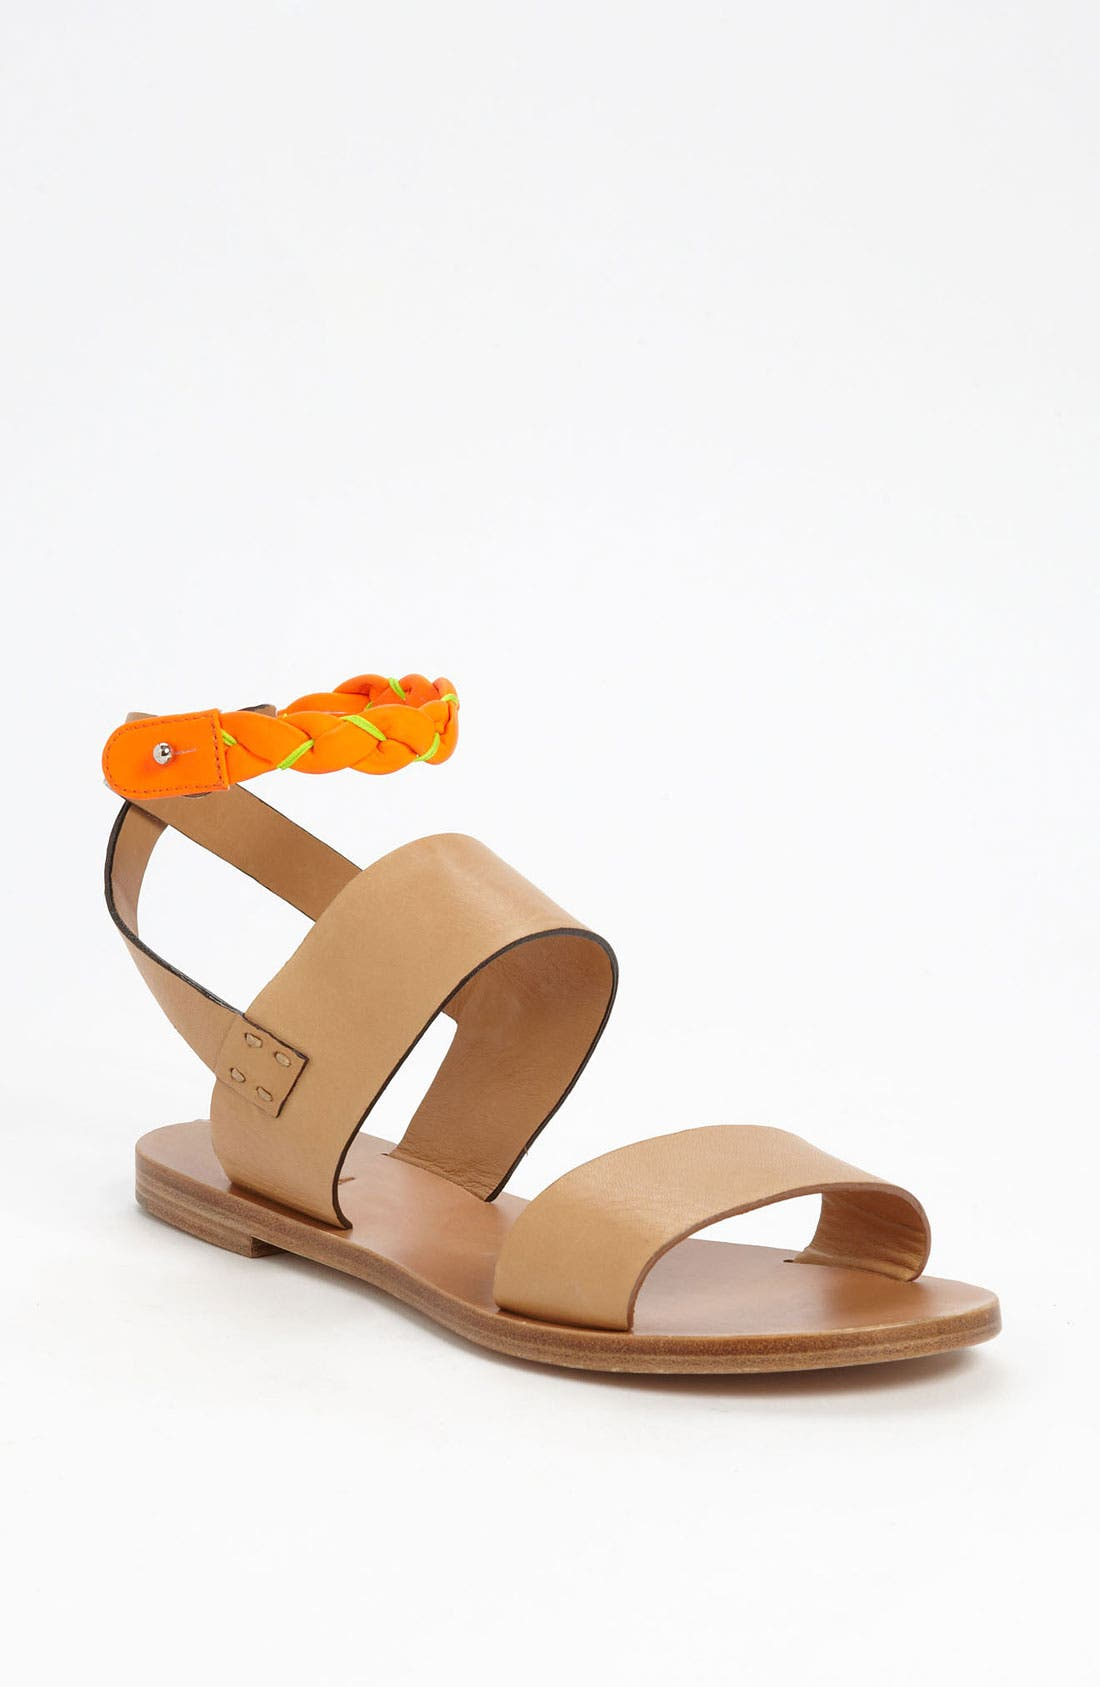 Main Image - See by Chloé 'Summer' Sandal